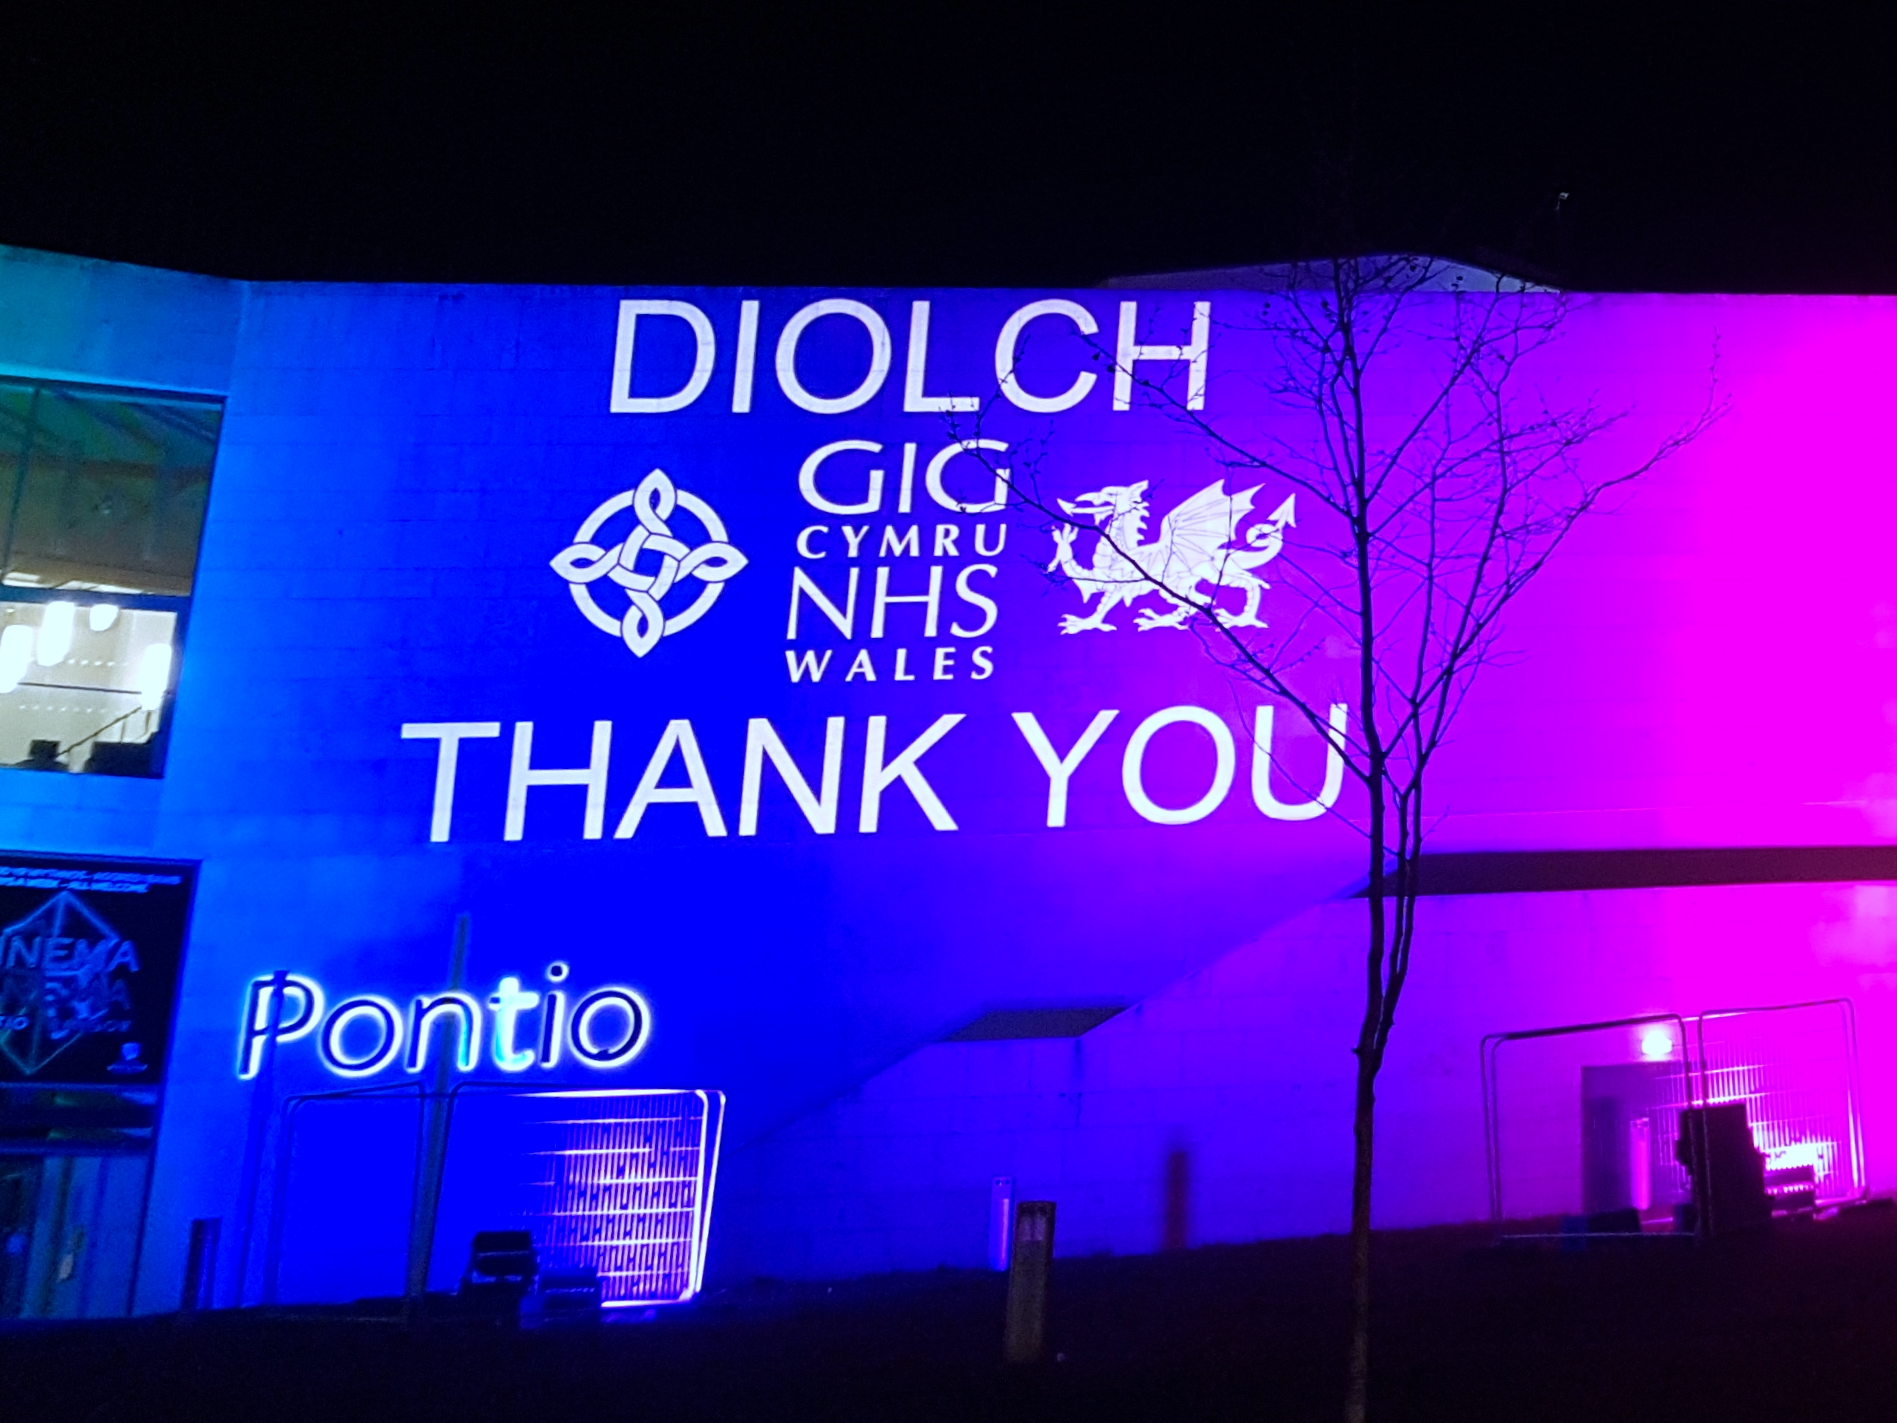 Outdoor projection & lighting on Pontio Theatre, Bangor, to say thank you to the NHS, blue lighting, white logo.